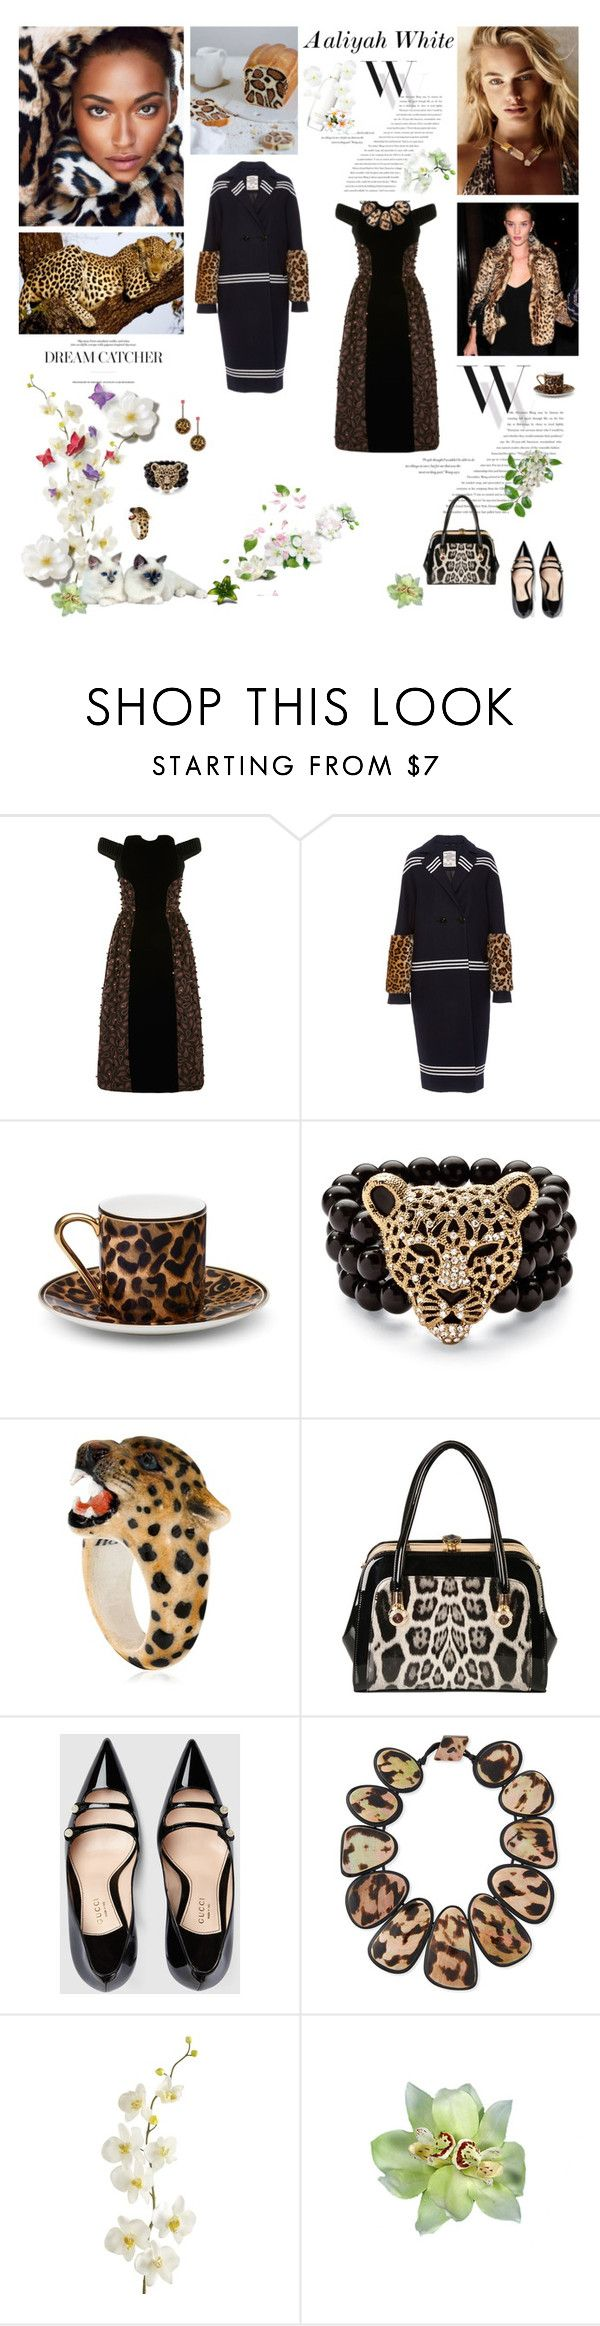 """Aaliyah 2016-445"" by aaliyah ❤ liked on Polyvore featuring Balenciaga, Holly Fulton, Baum und Pferdgarten, Asprey, Palm Beach Jewelry, Nach, Betsey Johnson, Rimen & Co., Gucci and Viktoria Hayman"